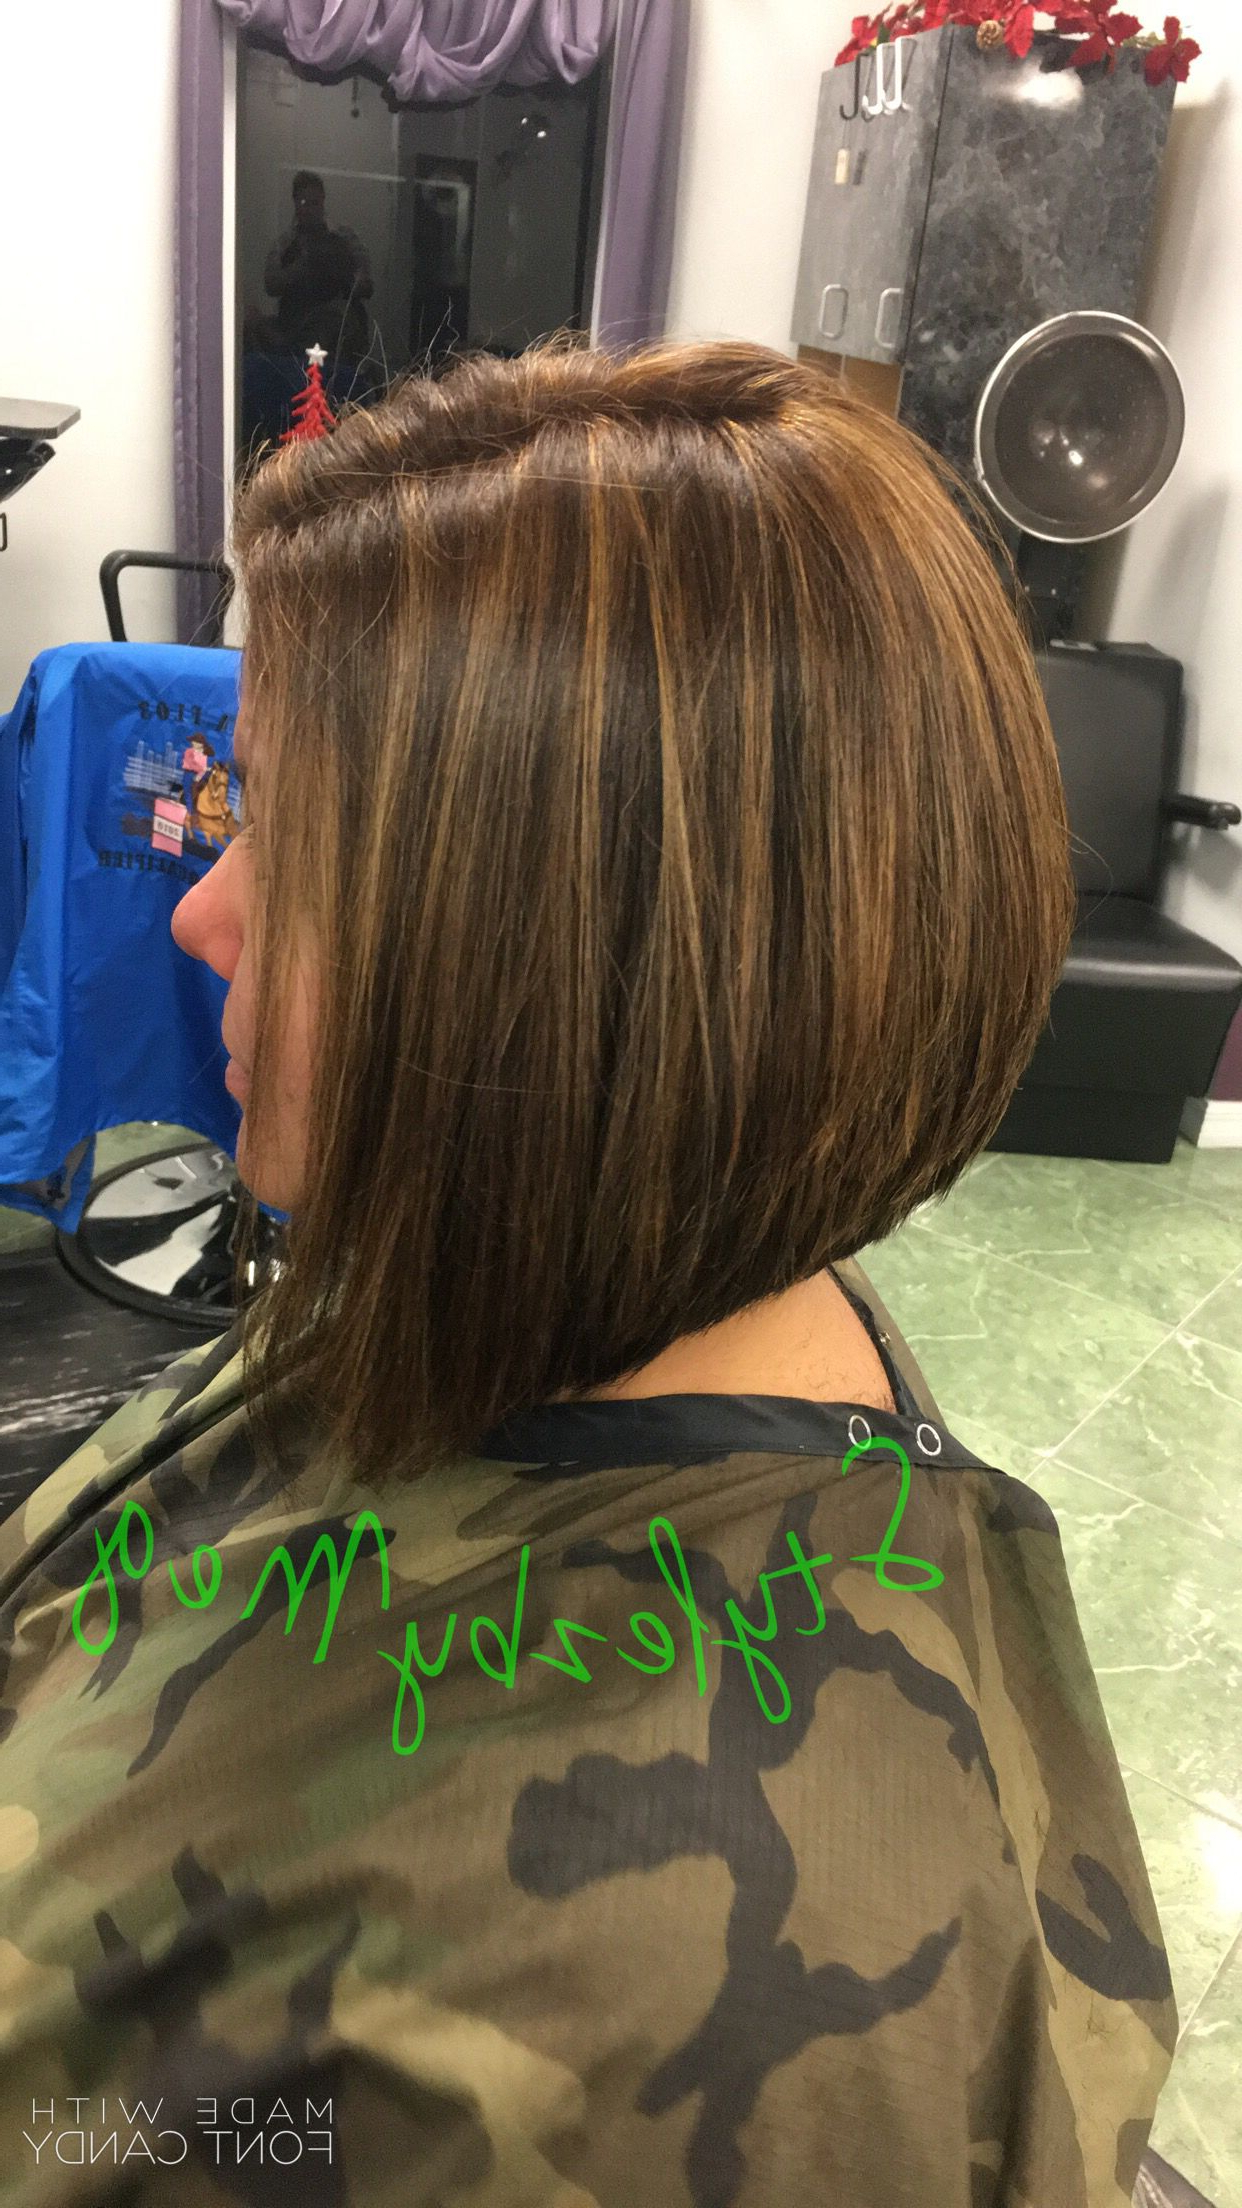 Swing/inverted Bob With Paul Mitchell Color And Caramel Highlights With Regard To Perfectly Angled Caramel Bob Haircuts (View 19 of 20)